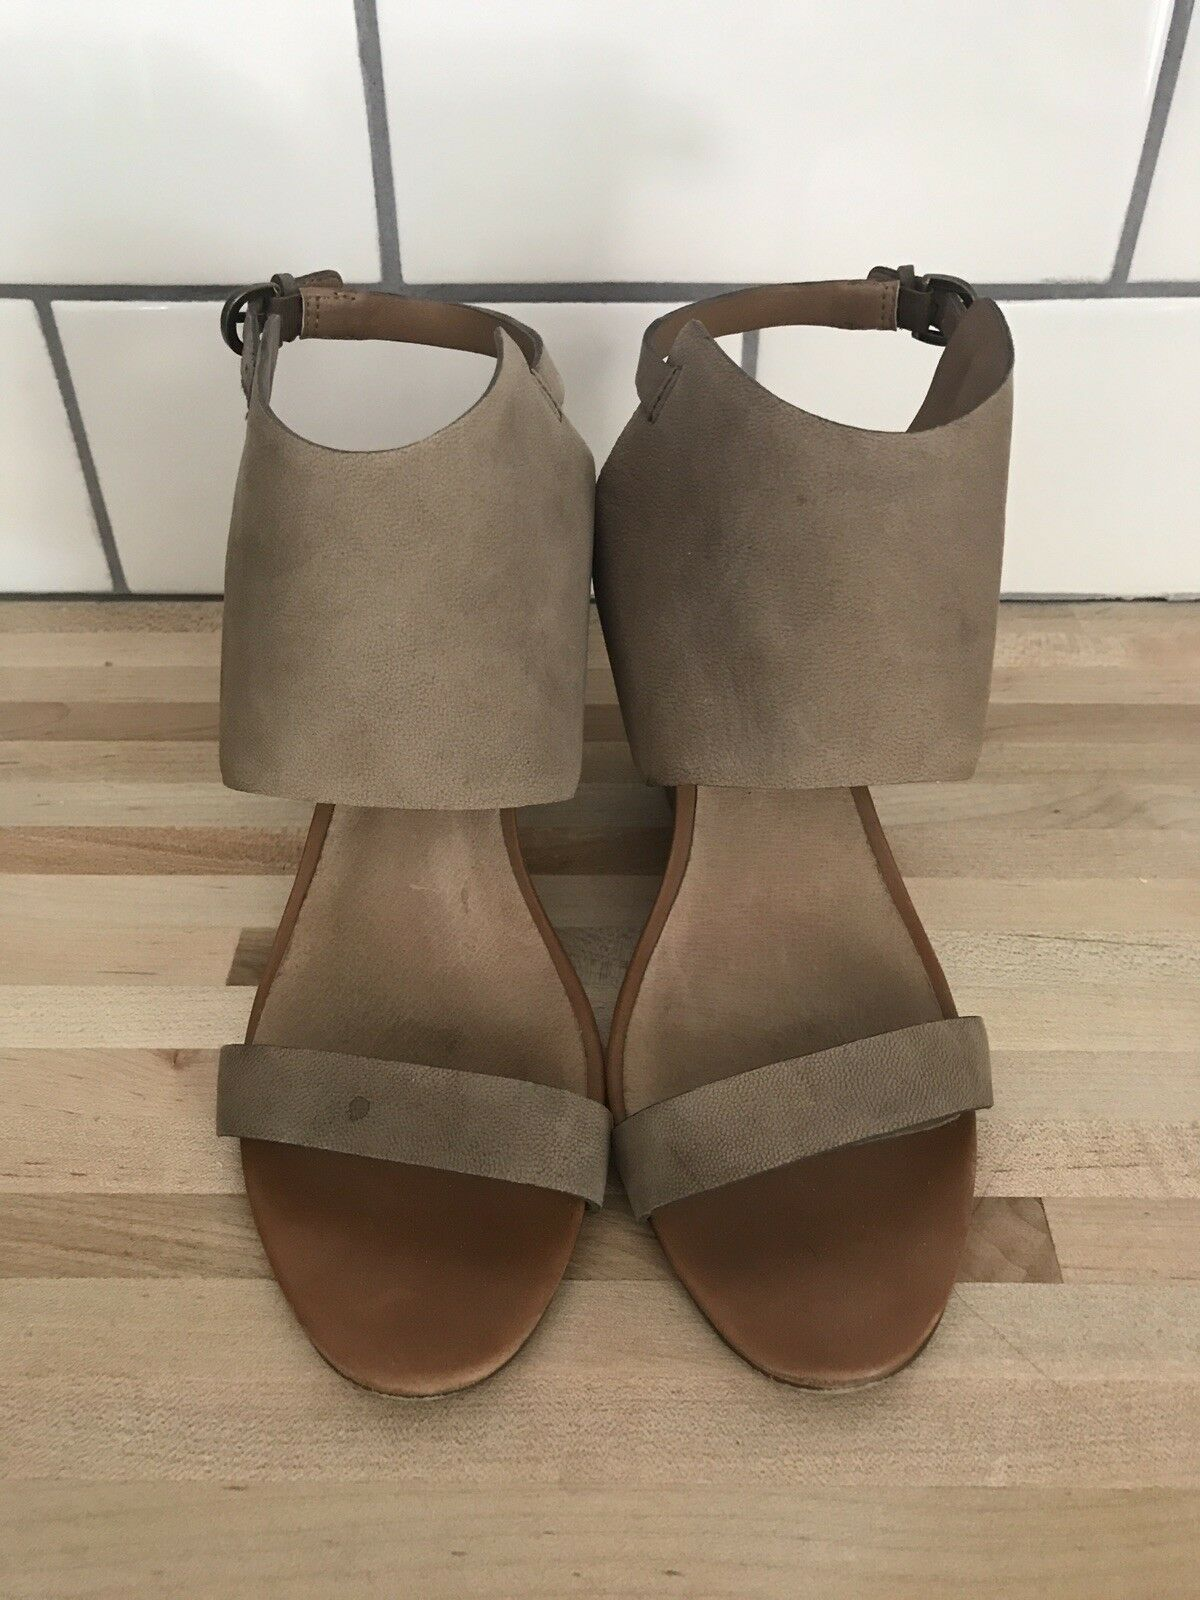 Nordstrom Halogen Womens Leather Taupe Open Toe Wedge Sandals Size 8.5